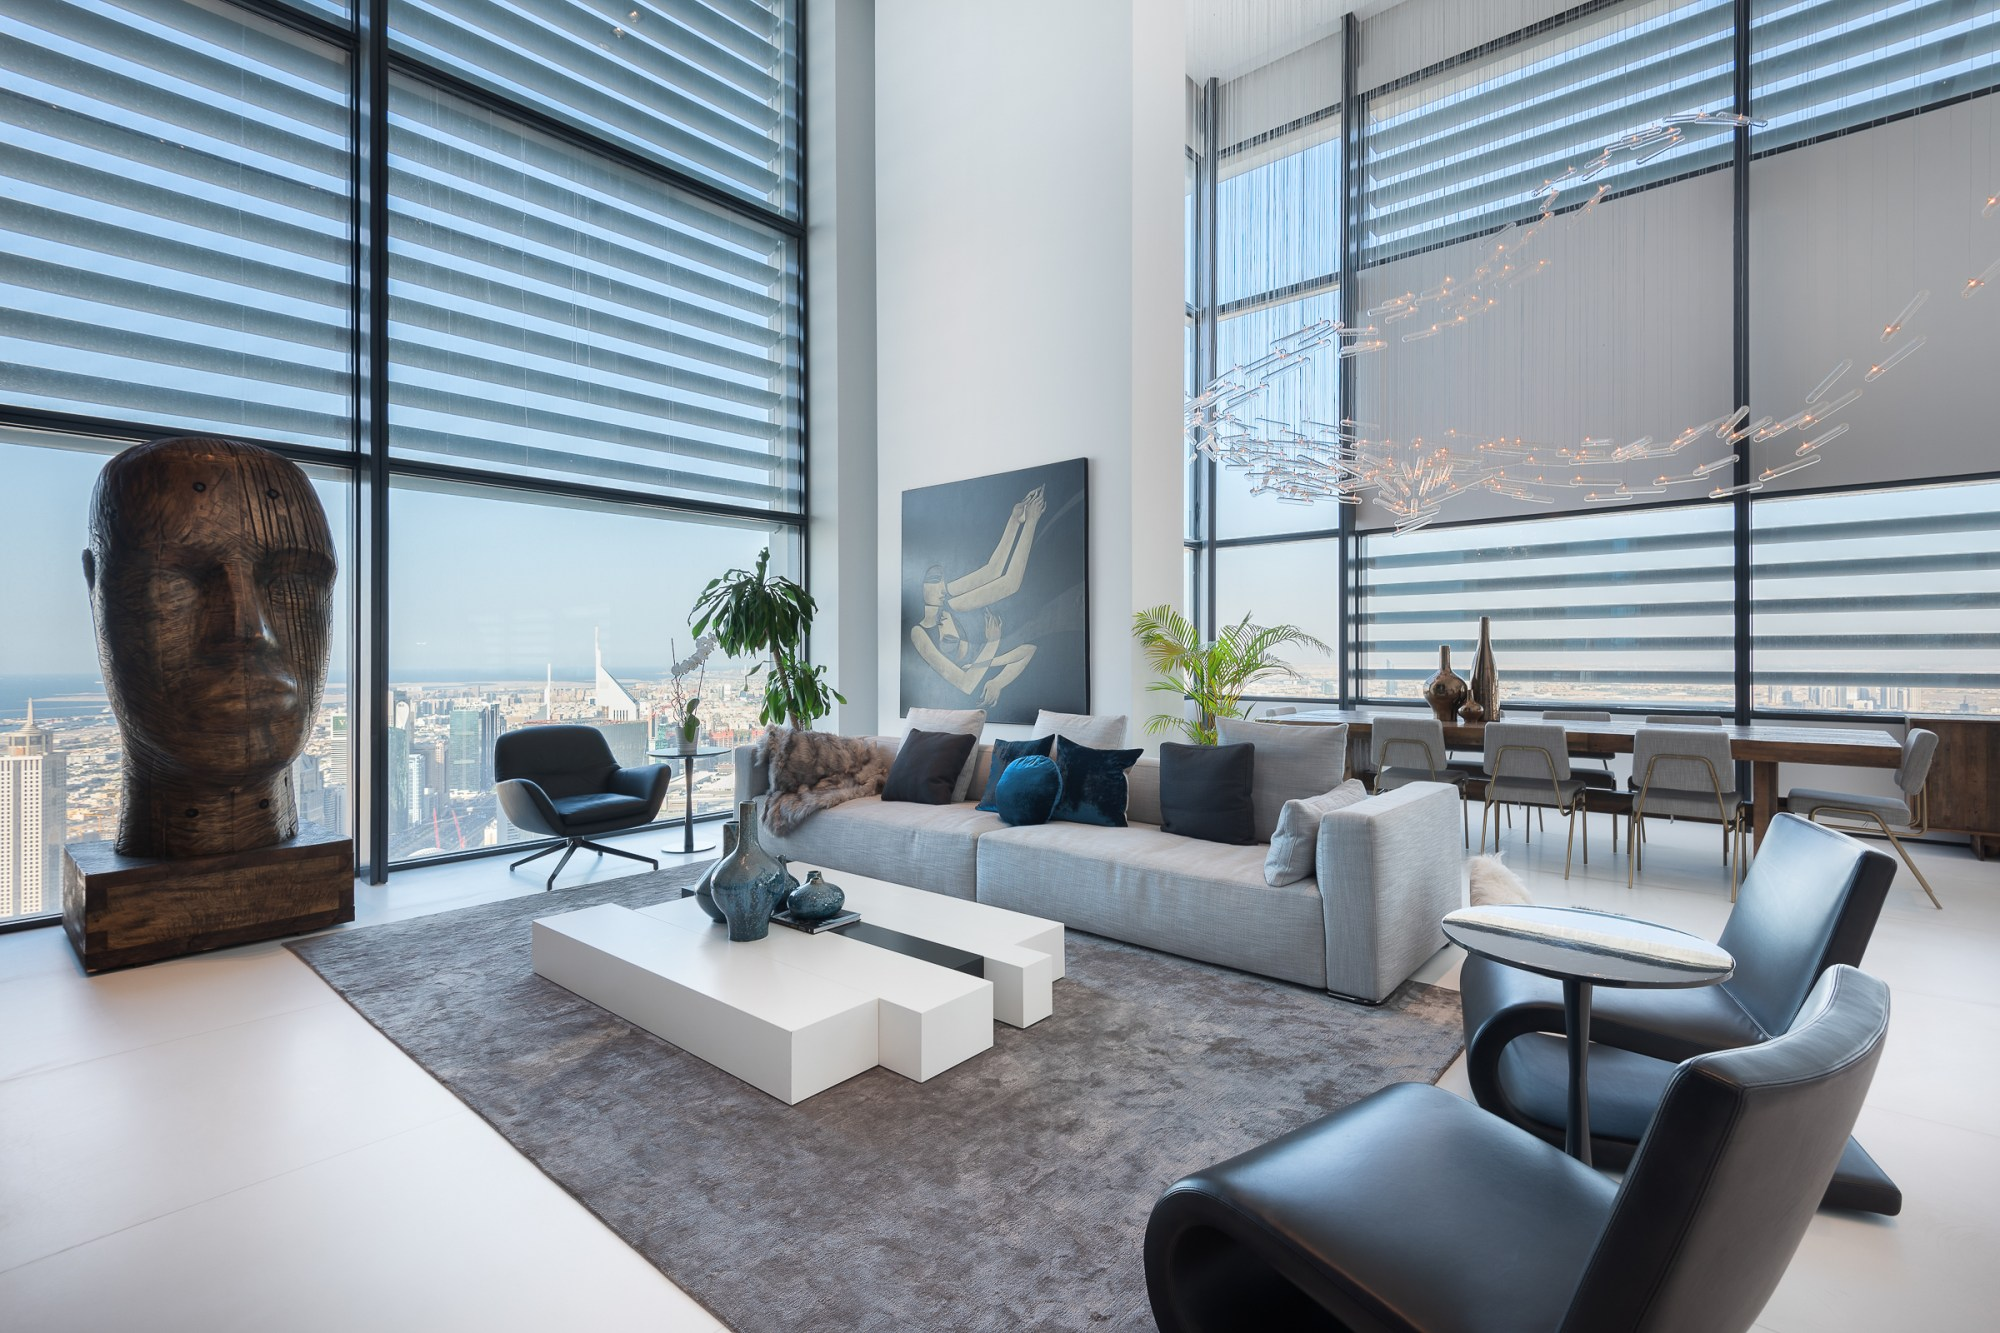 Super Exclusive 5 BR Triplex Penthouse with Pool